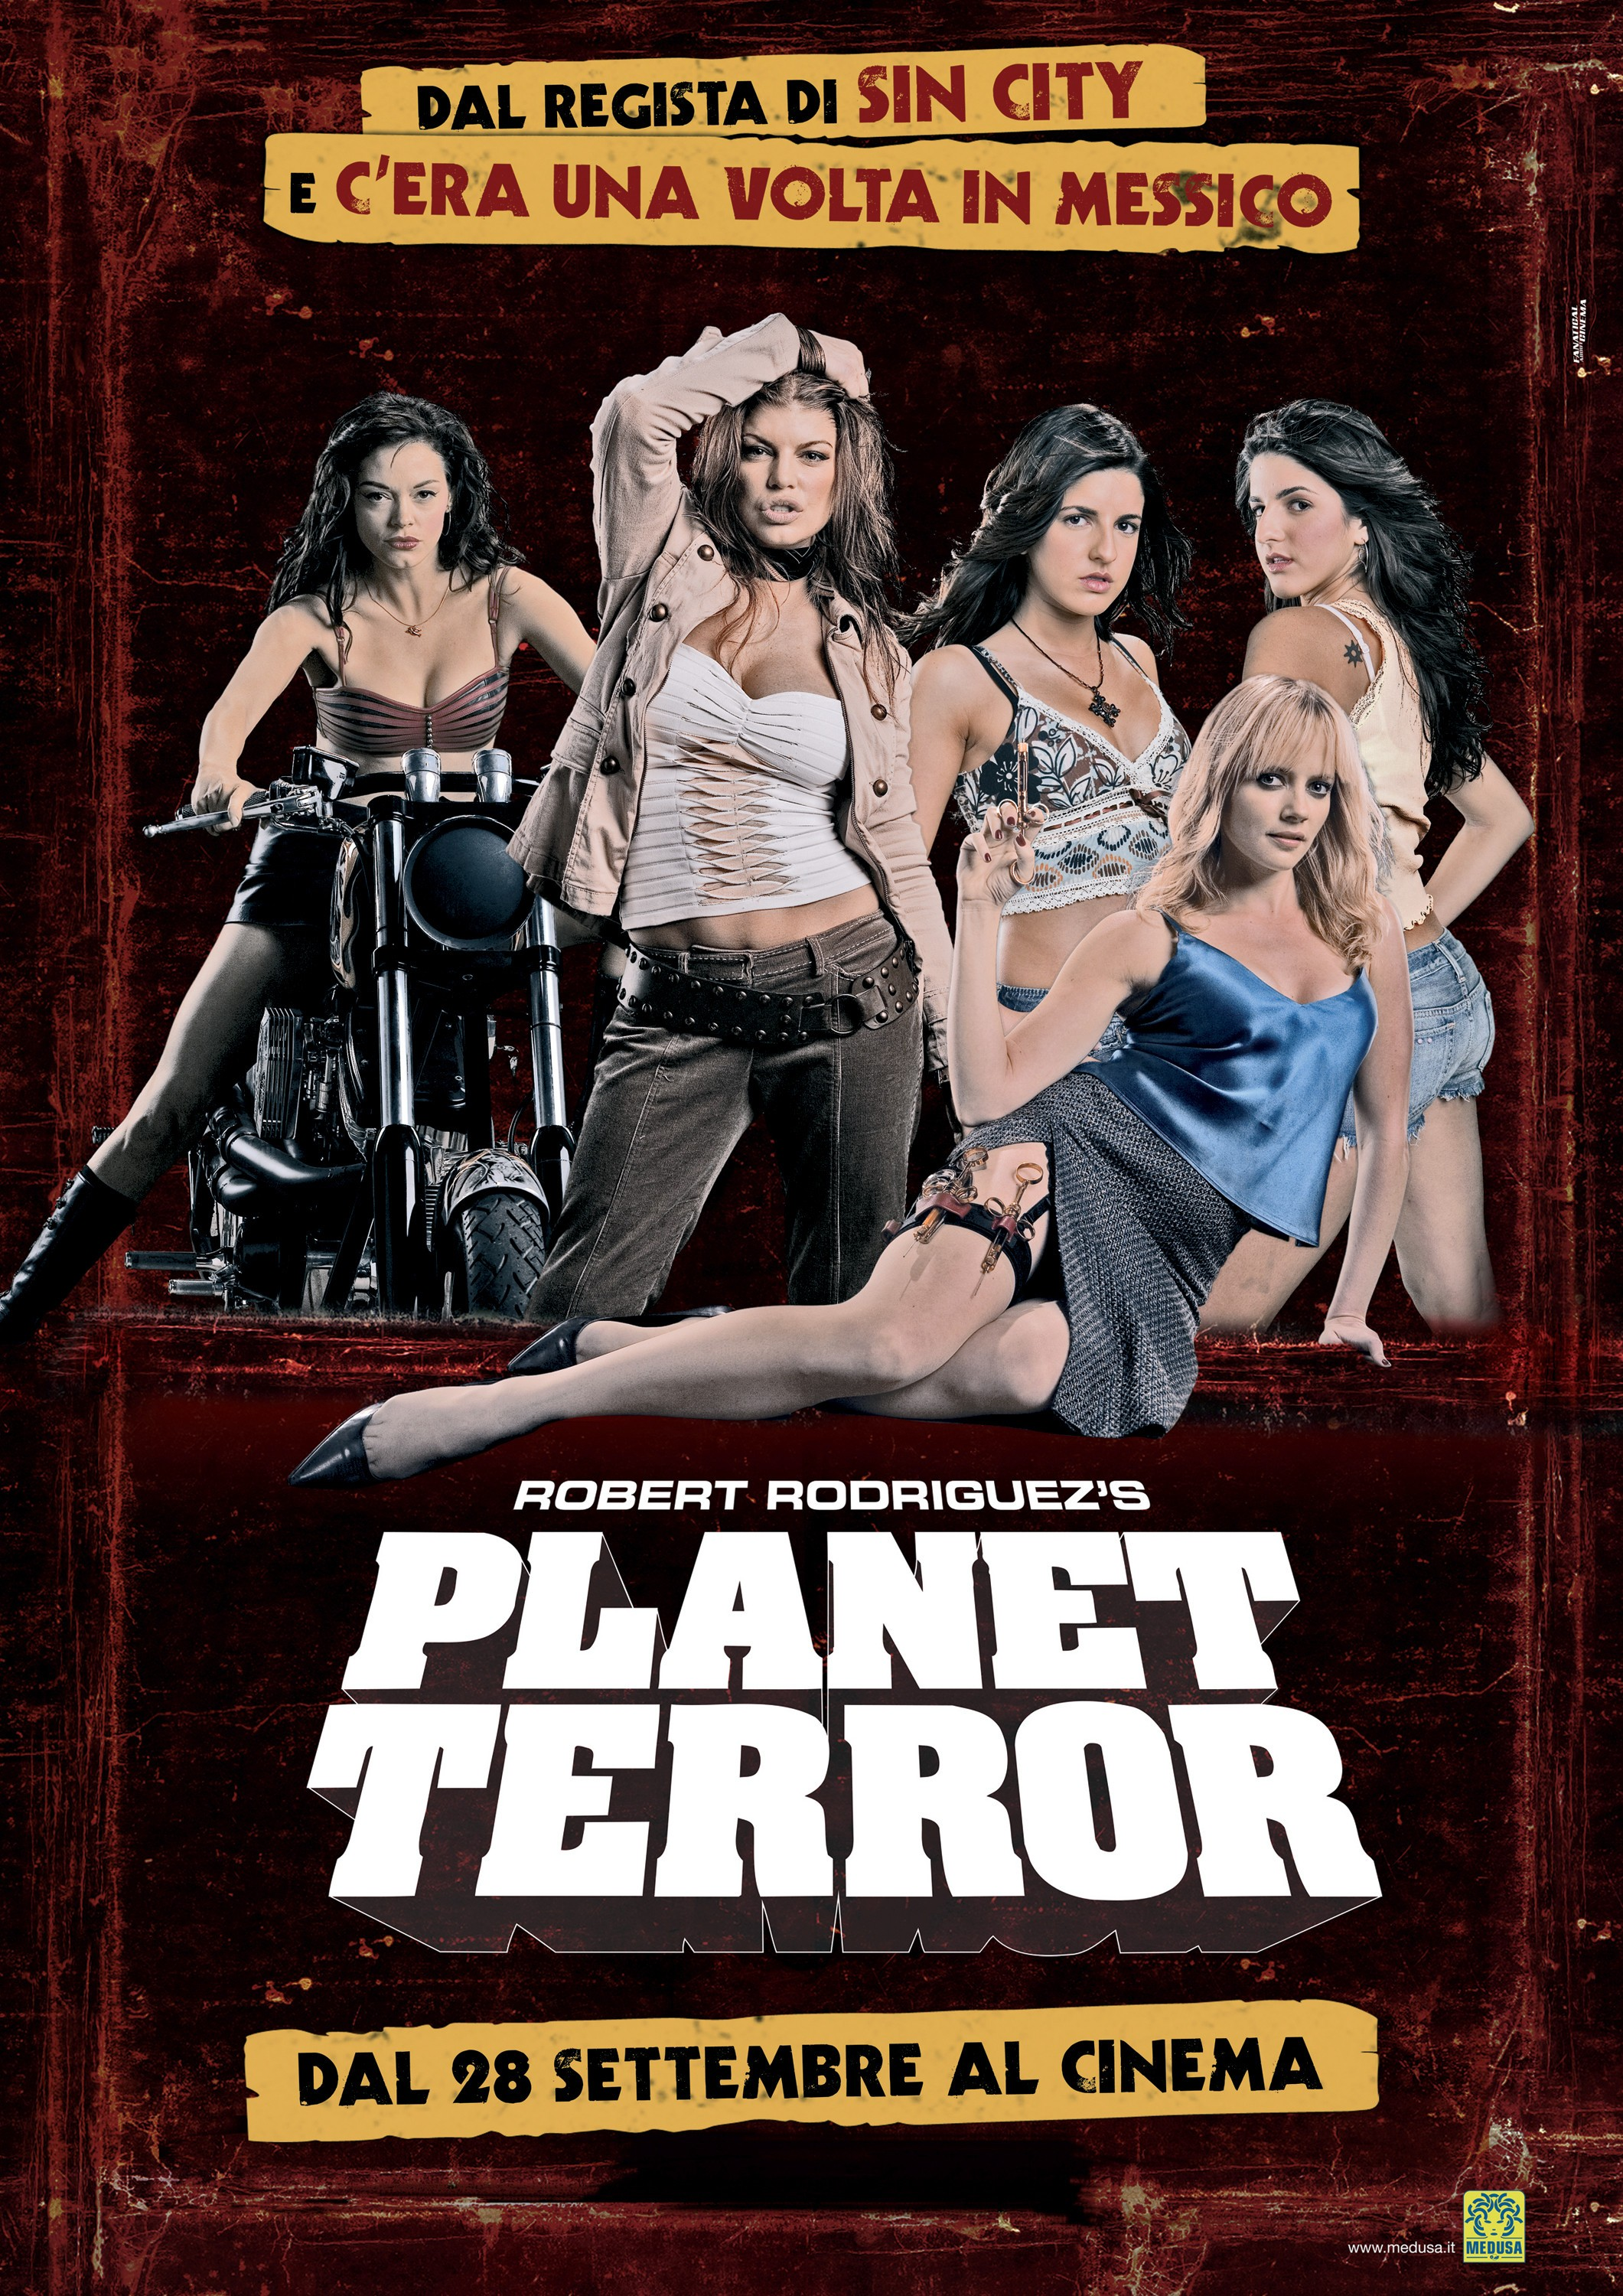 PLANET-TERROR-grindhouse-wallpaper-wp4609256